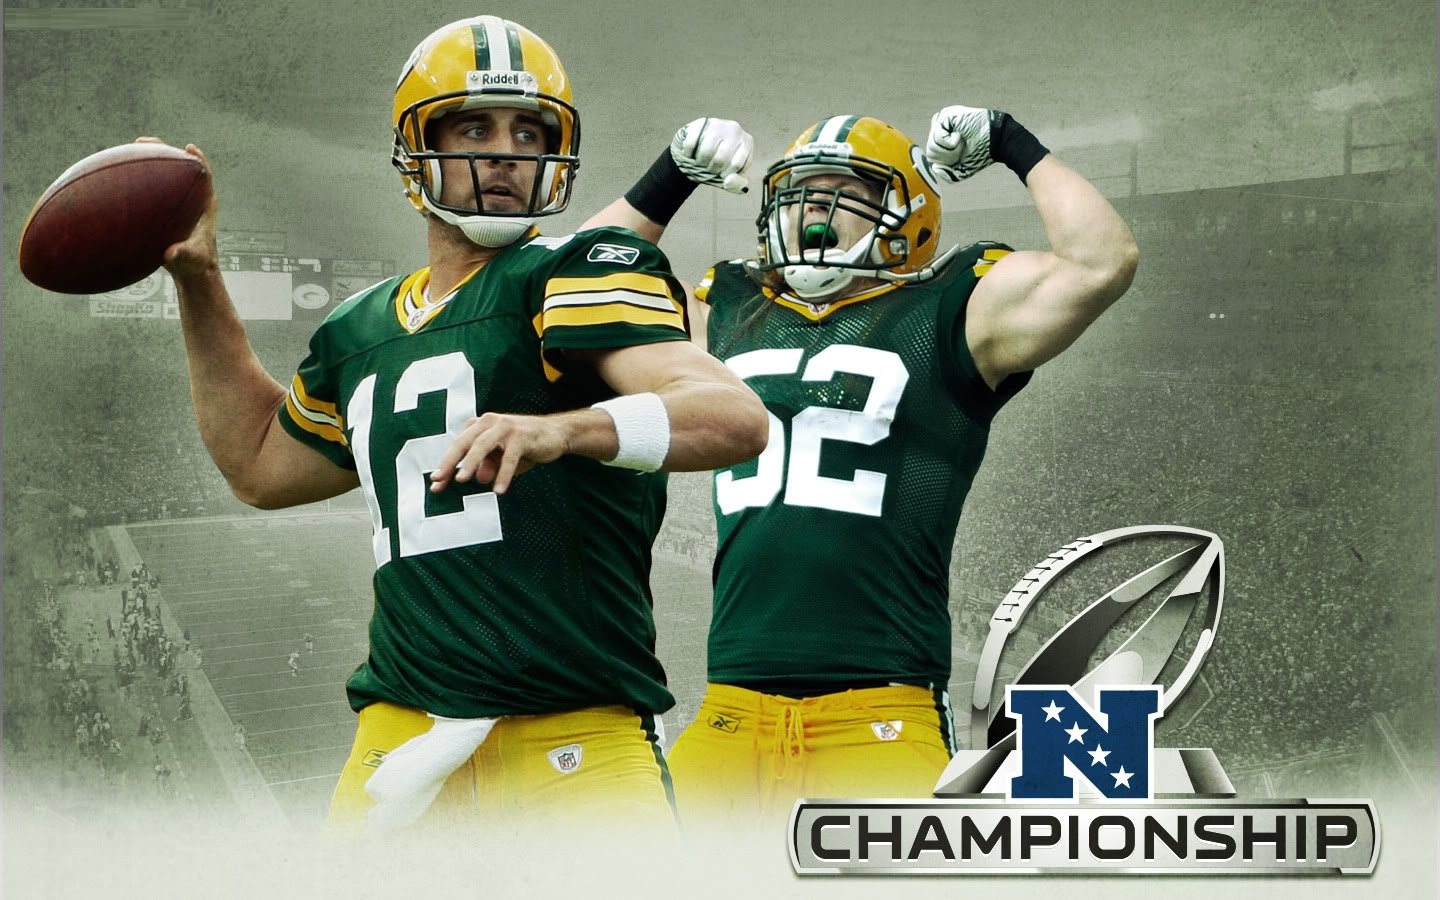 Green Bay Packers Wallpapers Green Bay Packers 1440x900